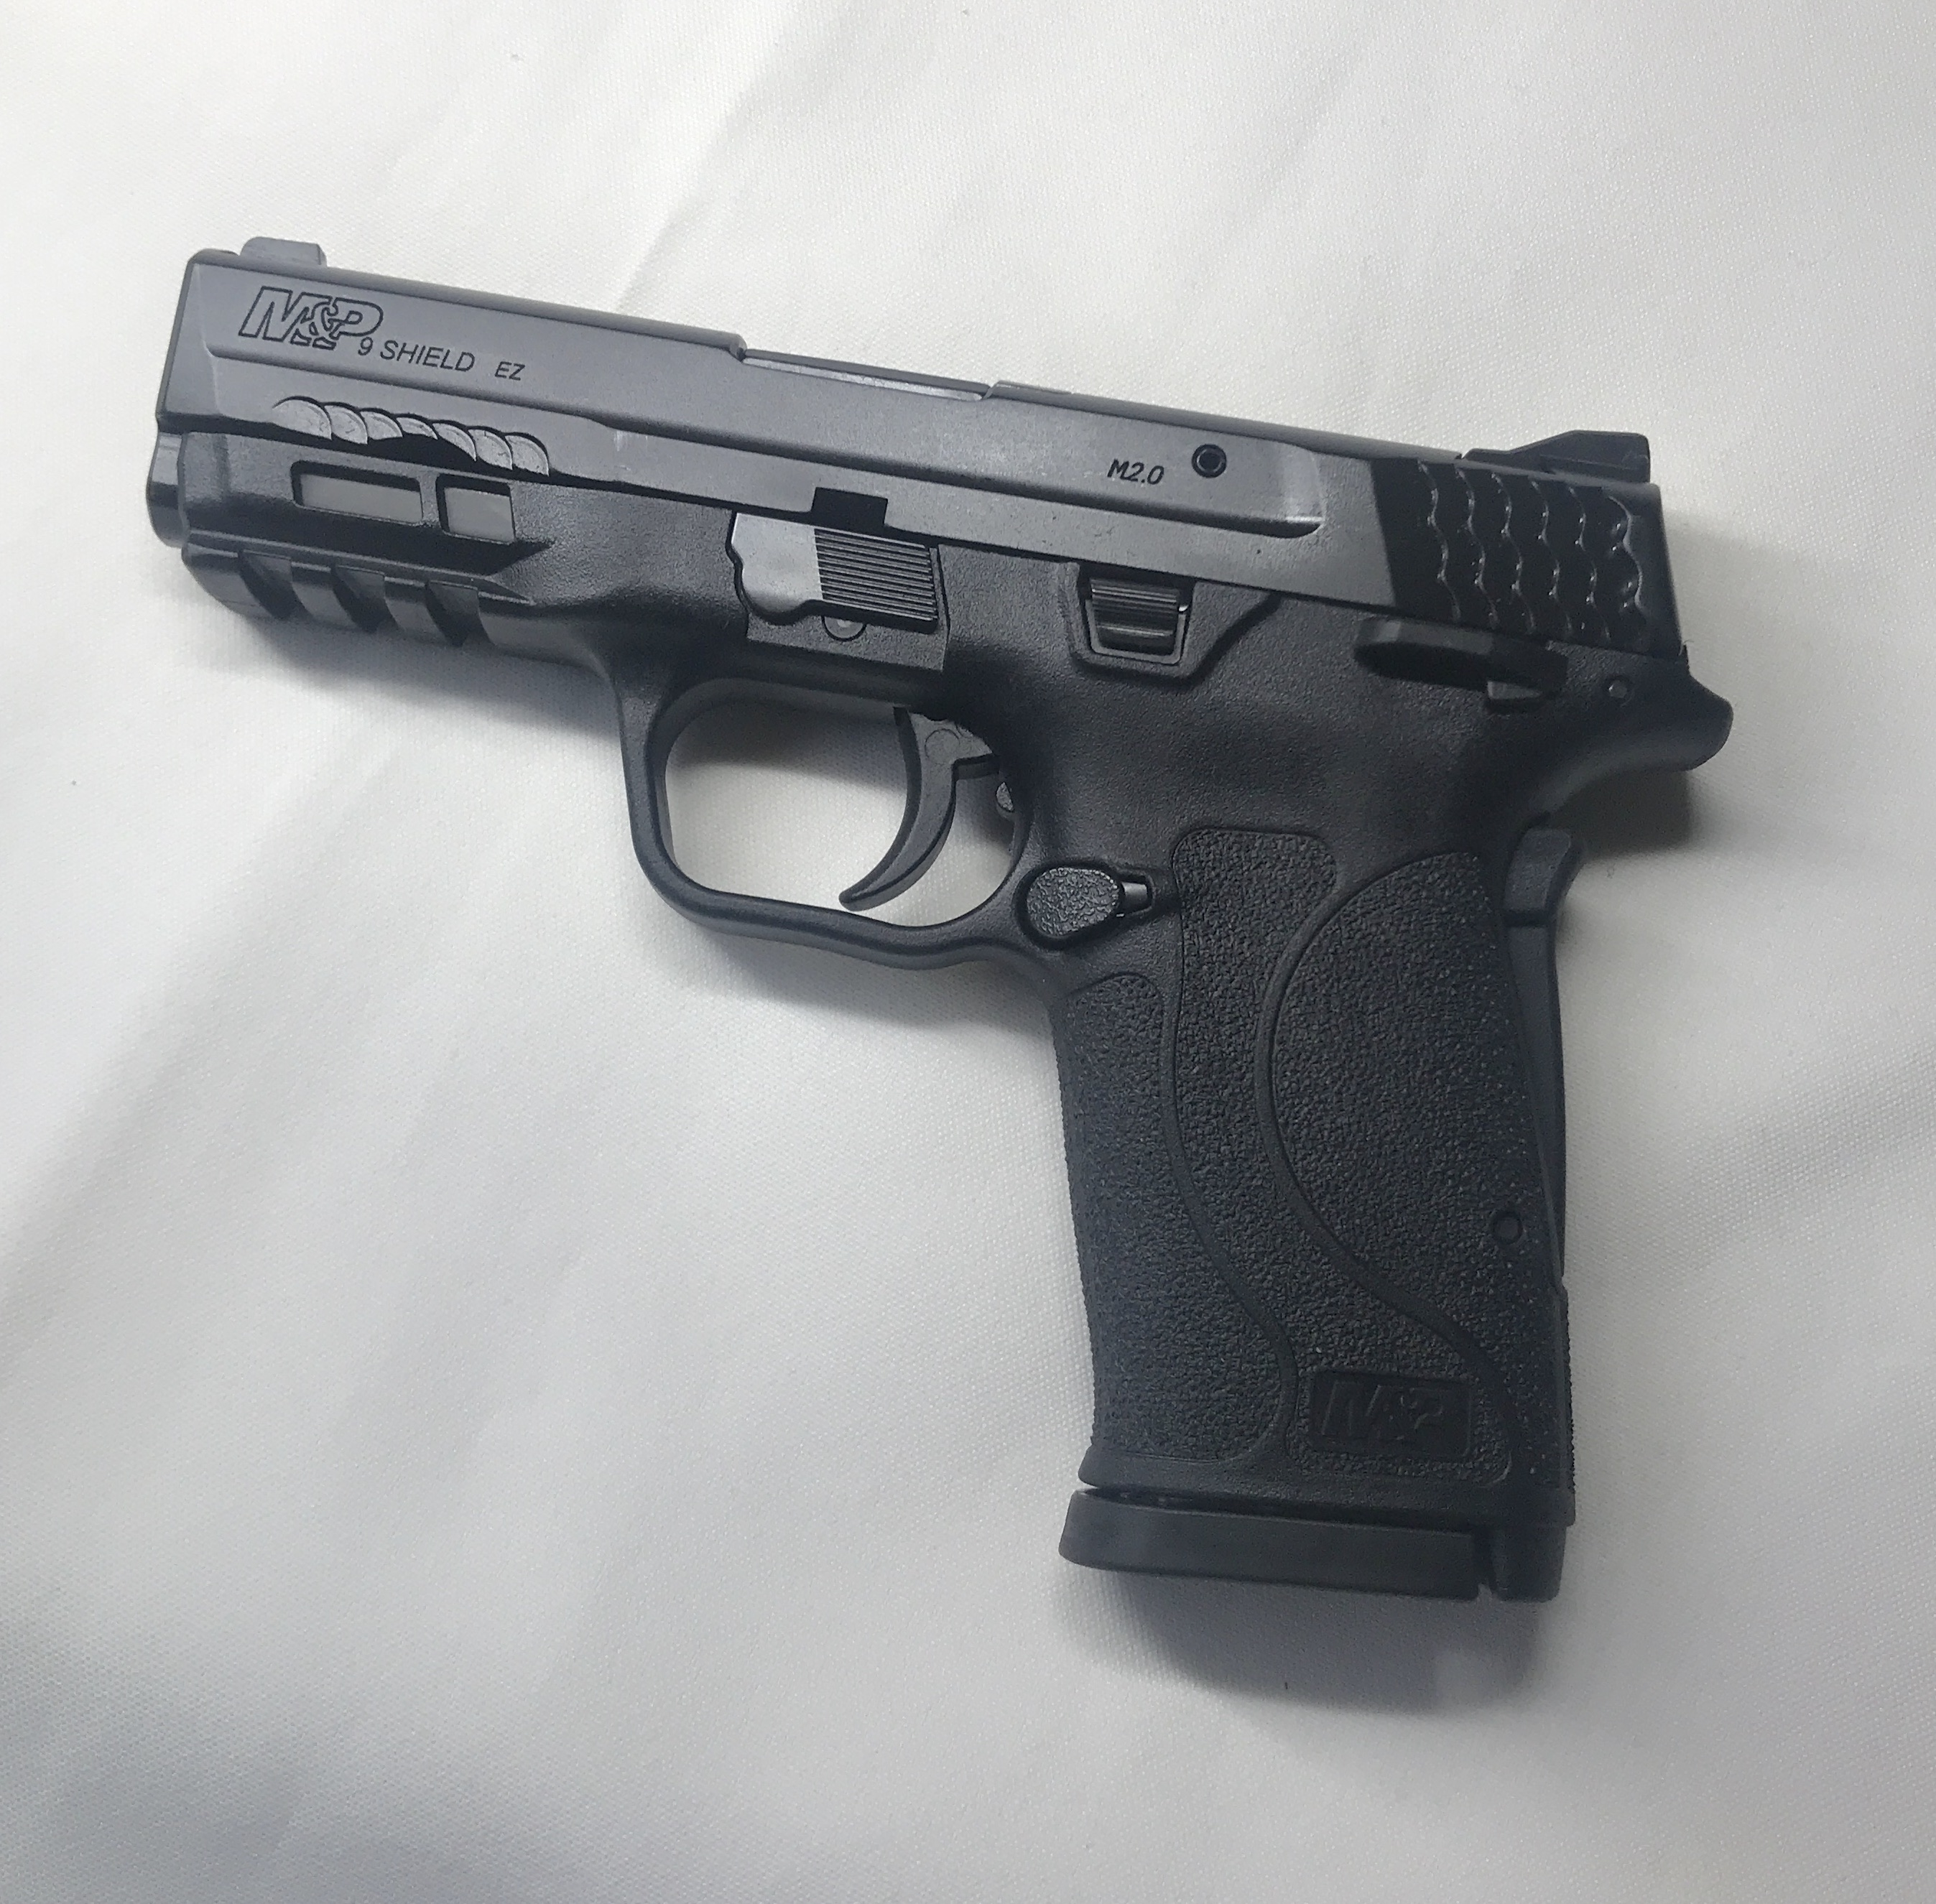 Smith & Wesson M&P 9 SHIELD EZ with Manual Thumb Safety